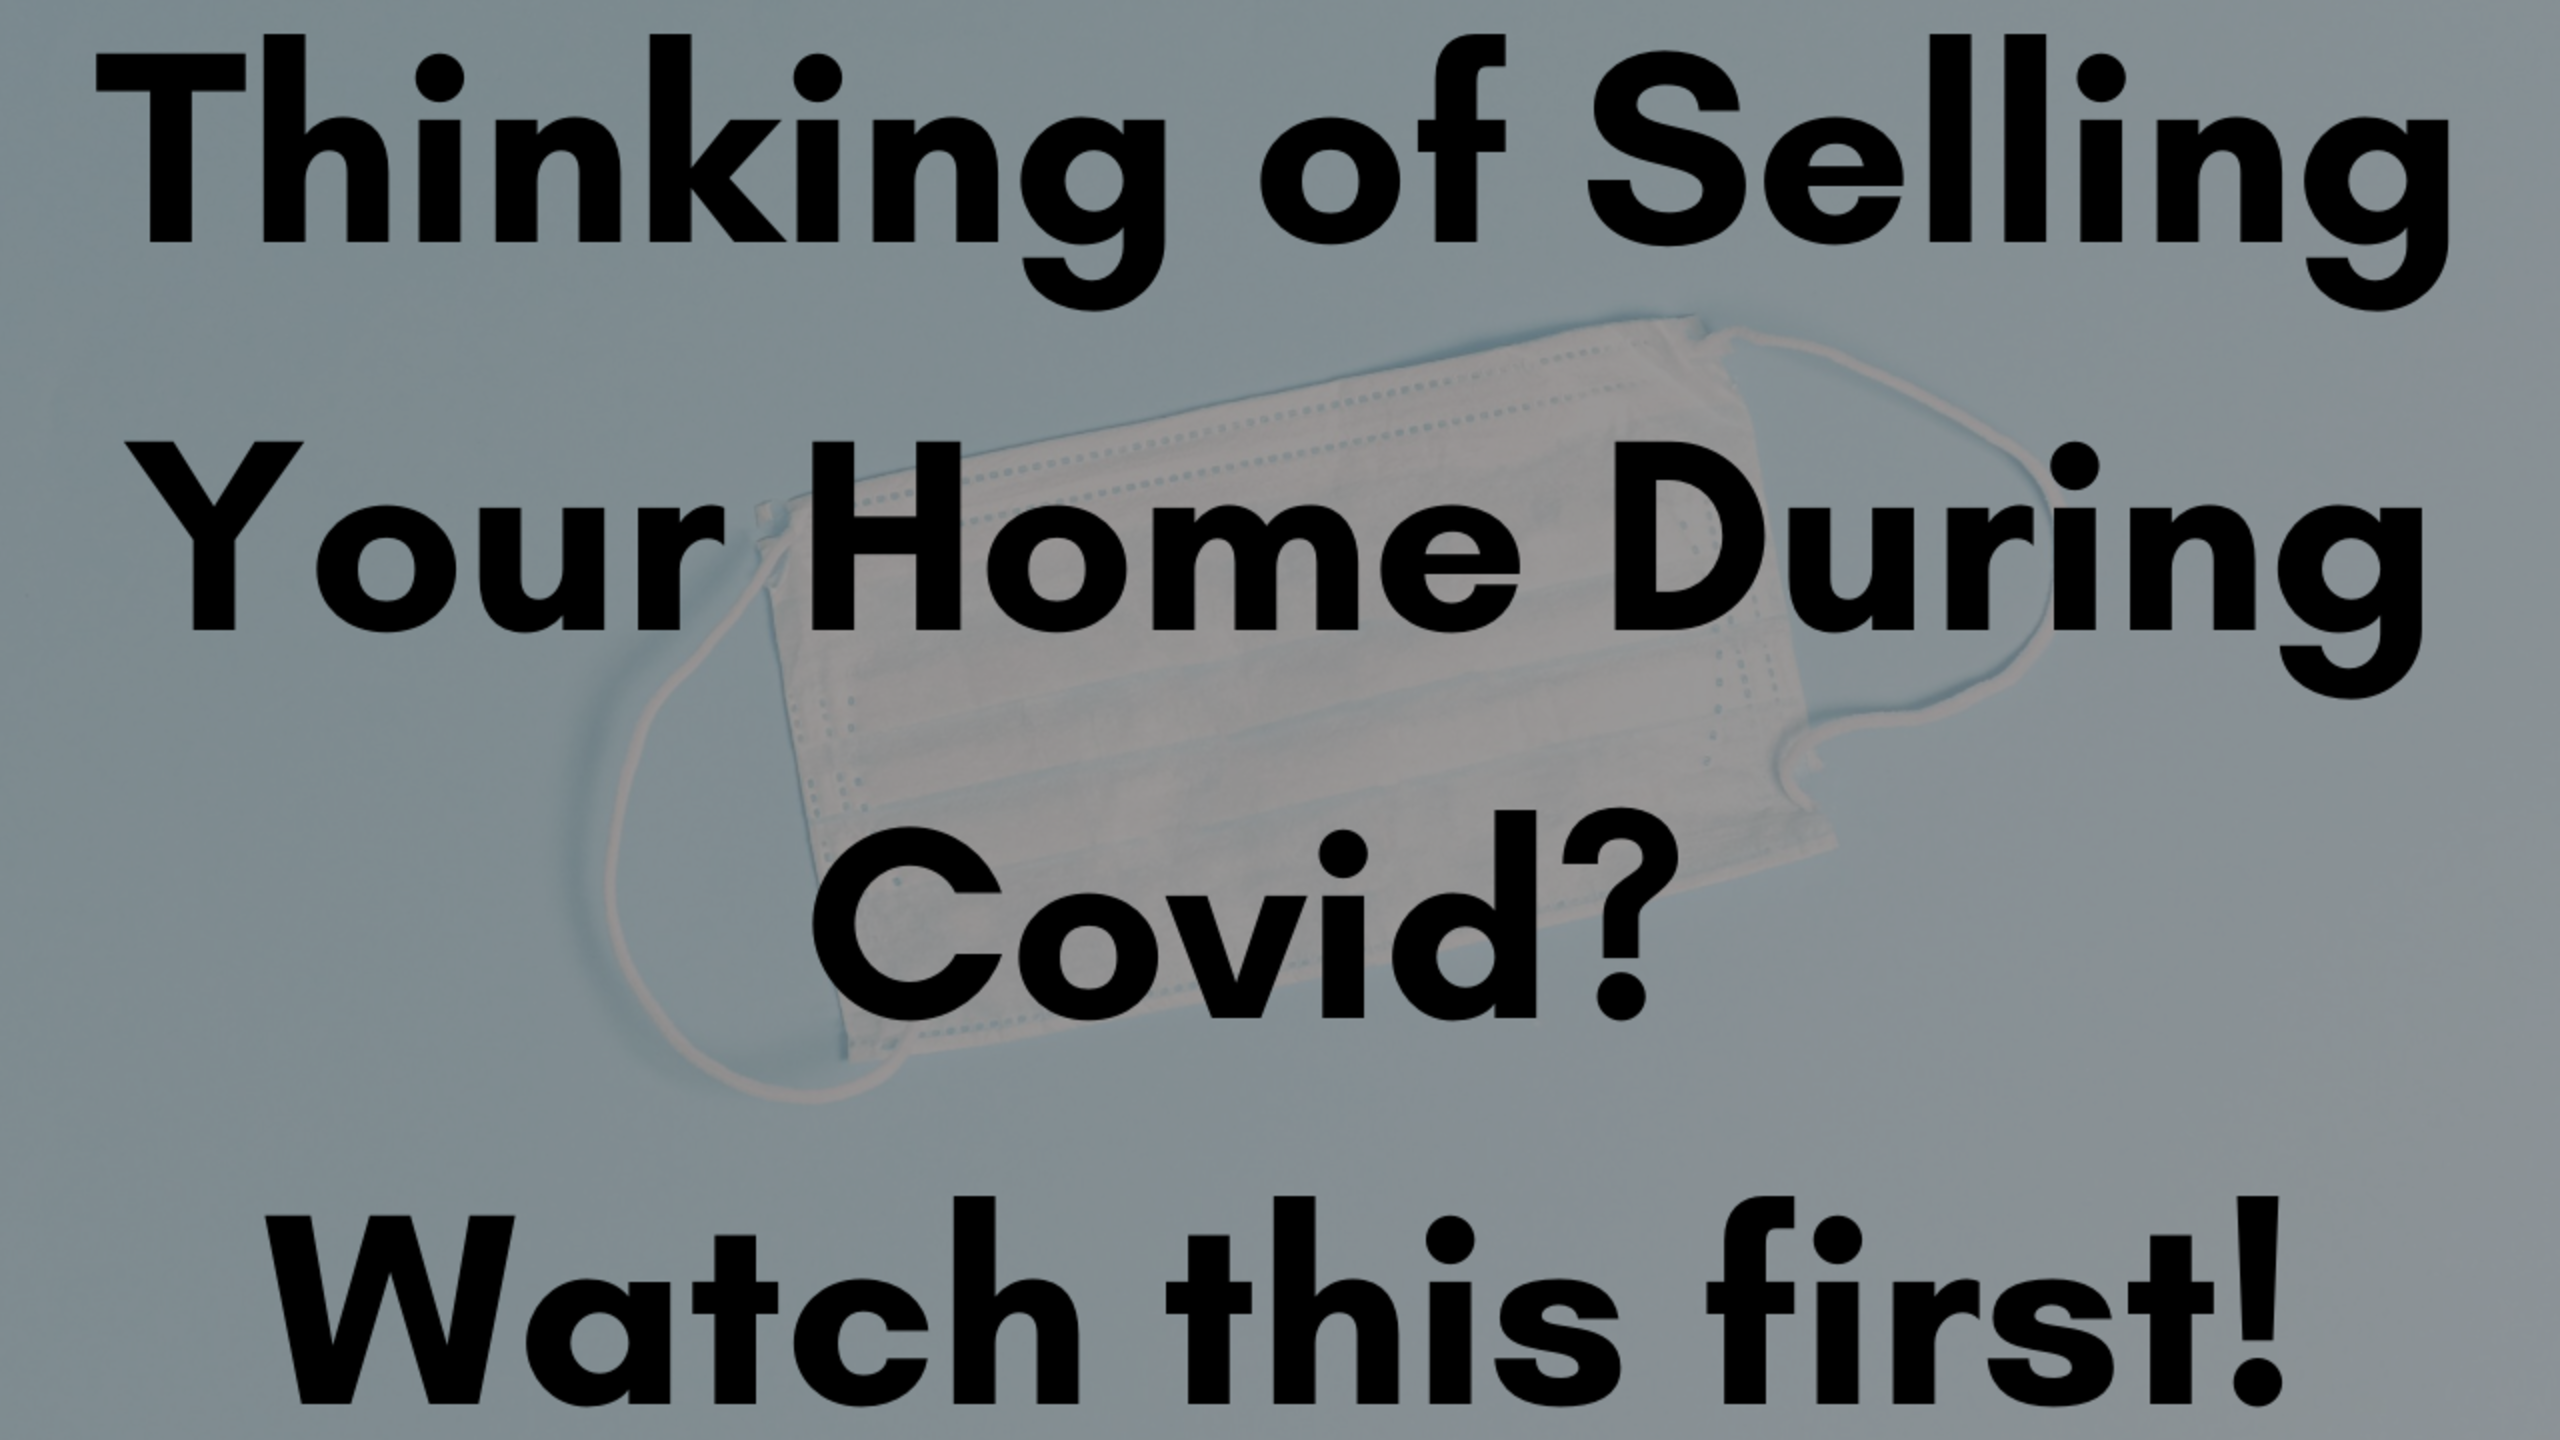 How to Sell Your Home During Covid